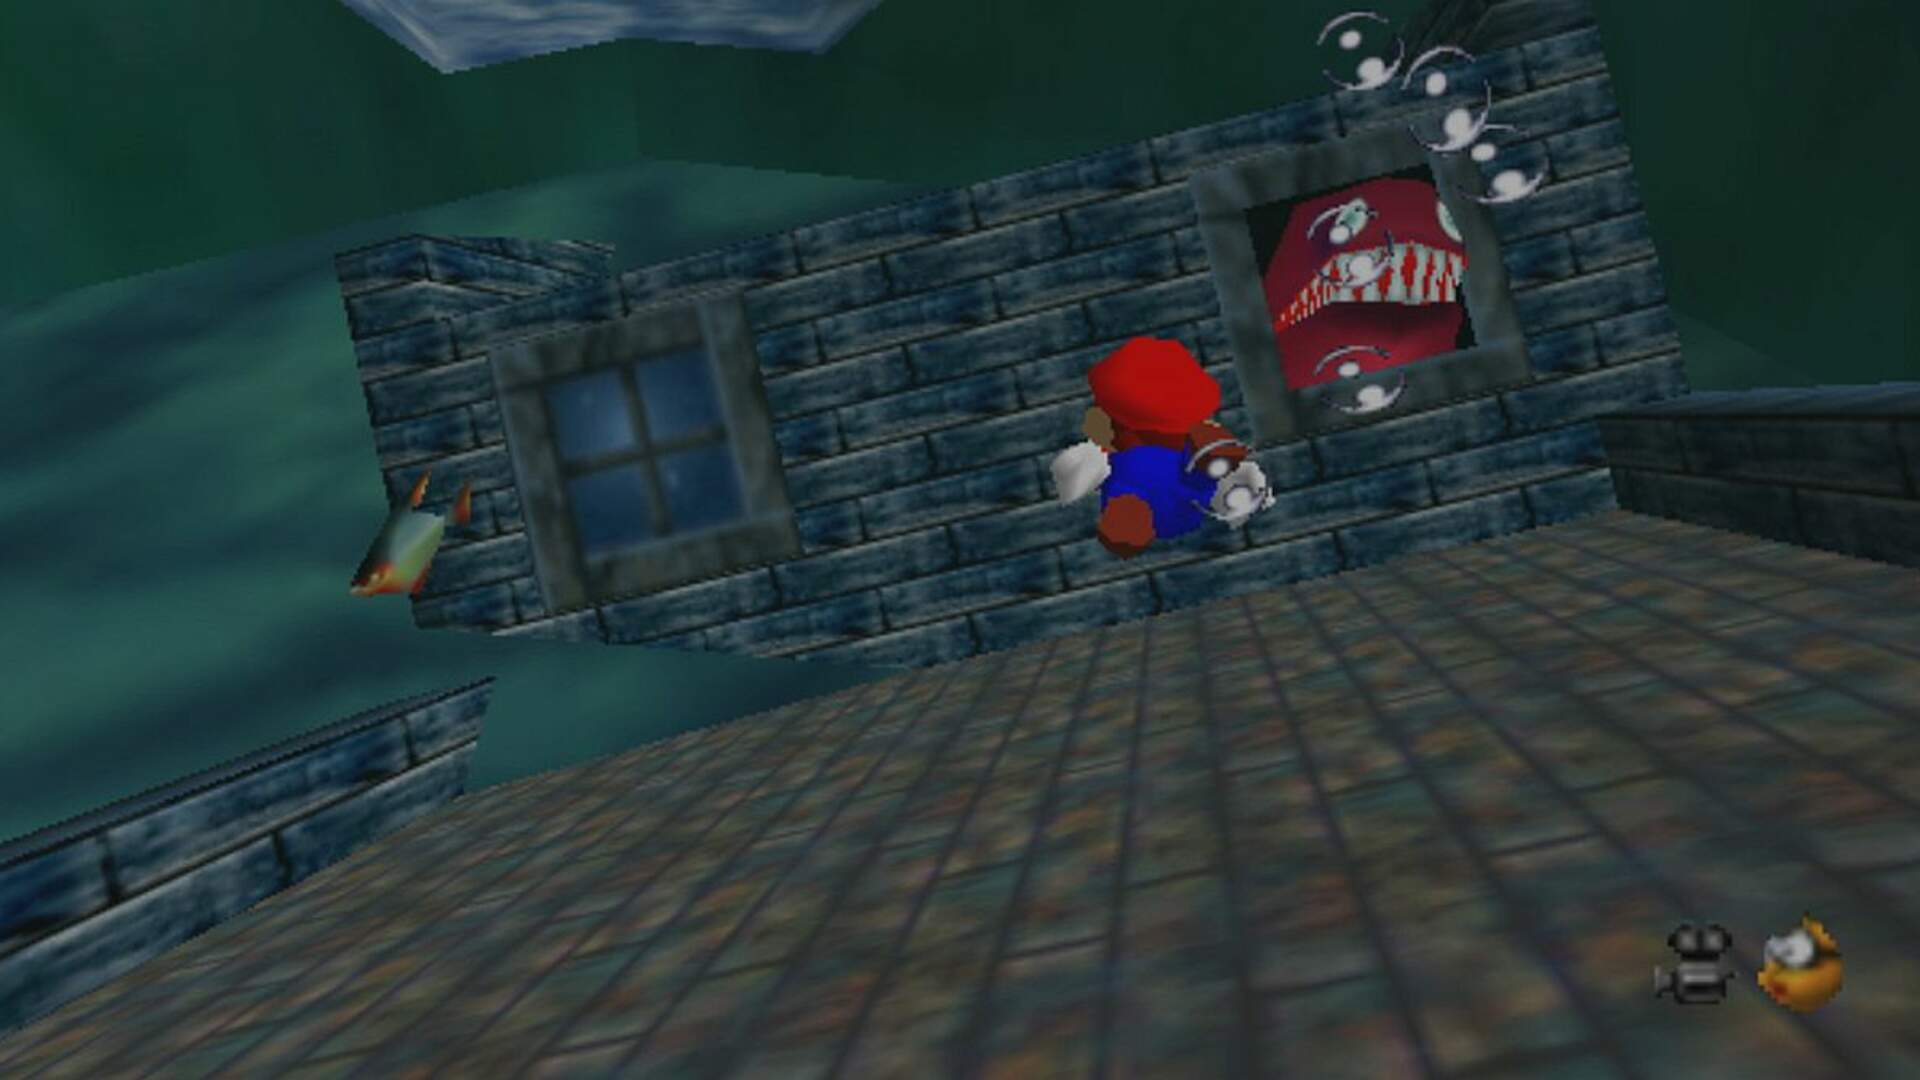 YouTube Videos Show Off Rare Beta Footage for Super Mario 64 and Super Mario RPG